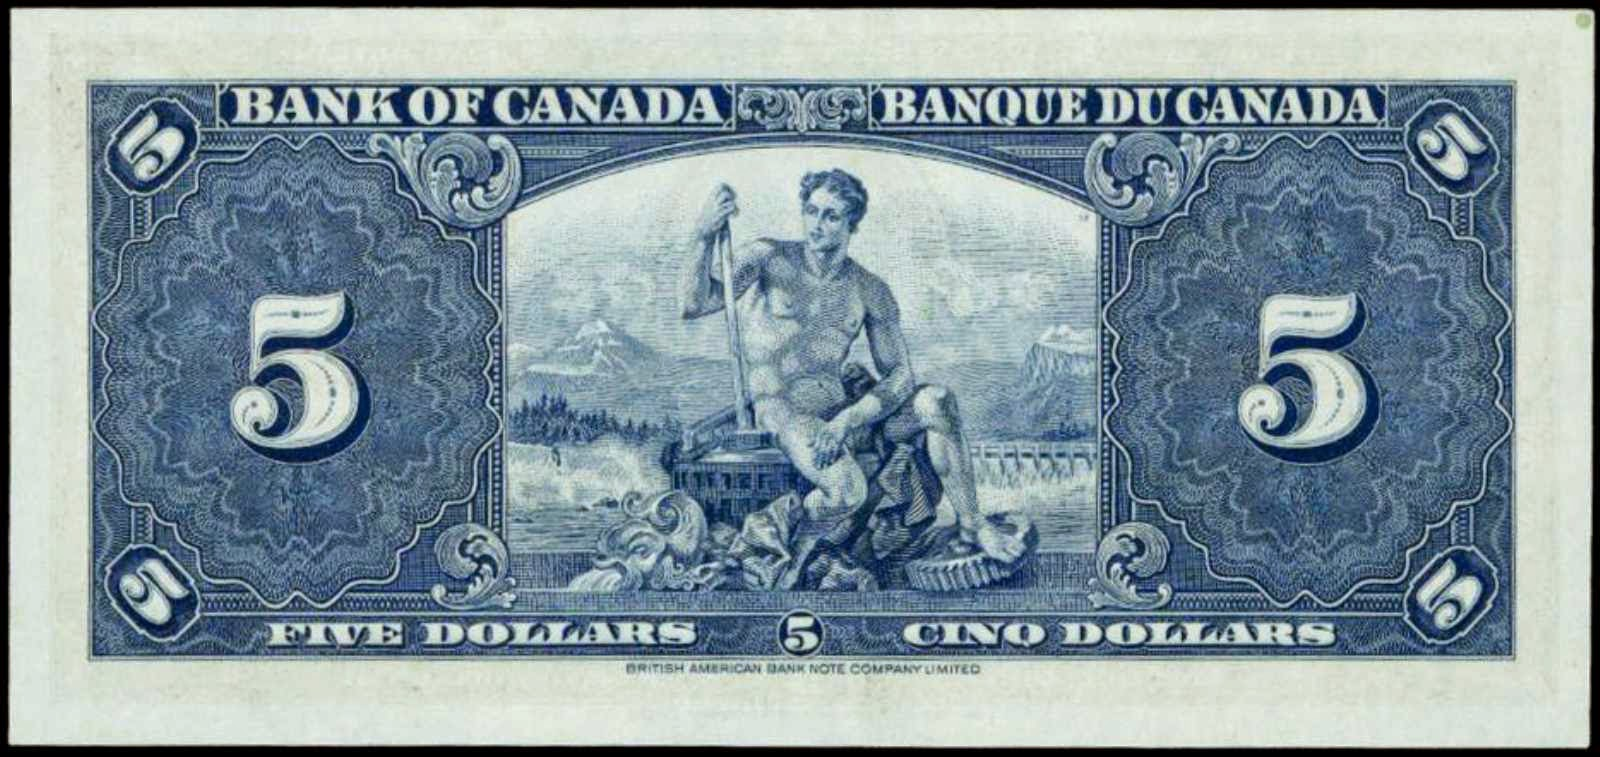 1937 Canadian 5 Dollar Bank Note